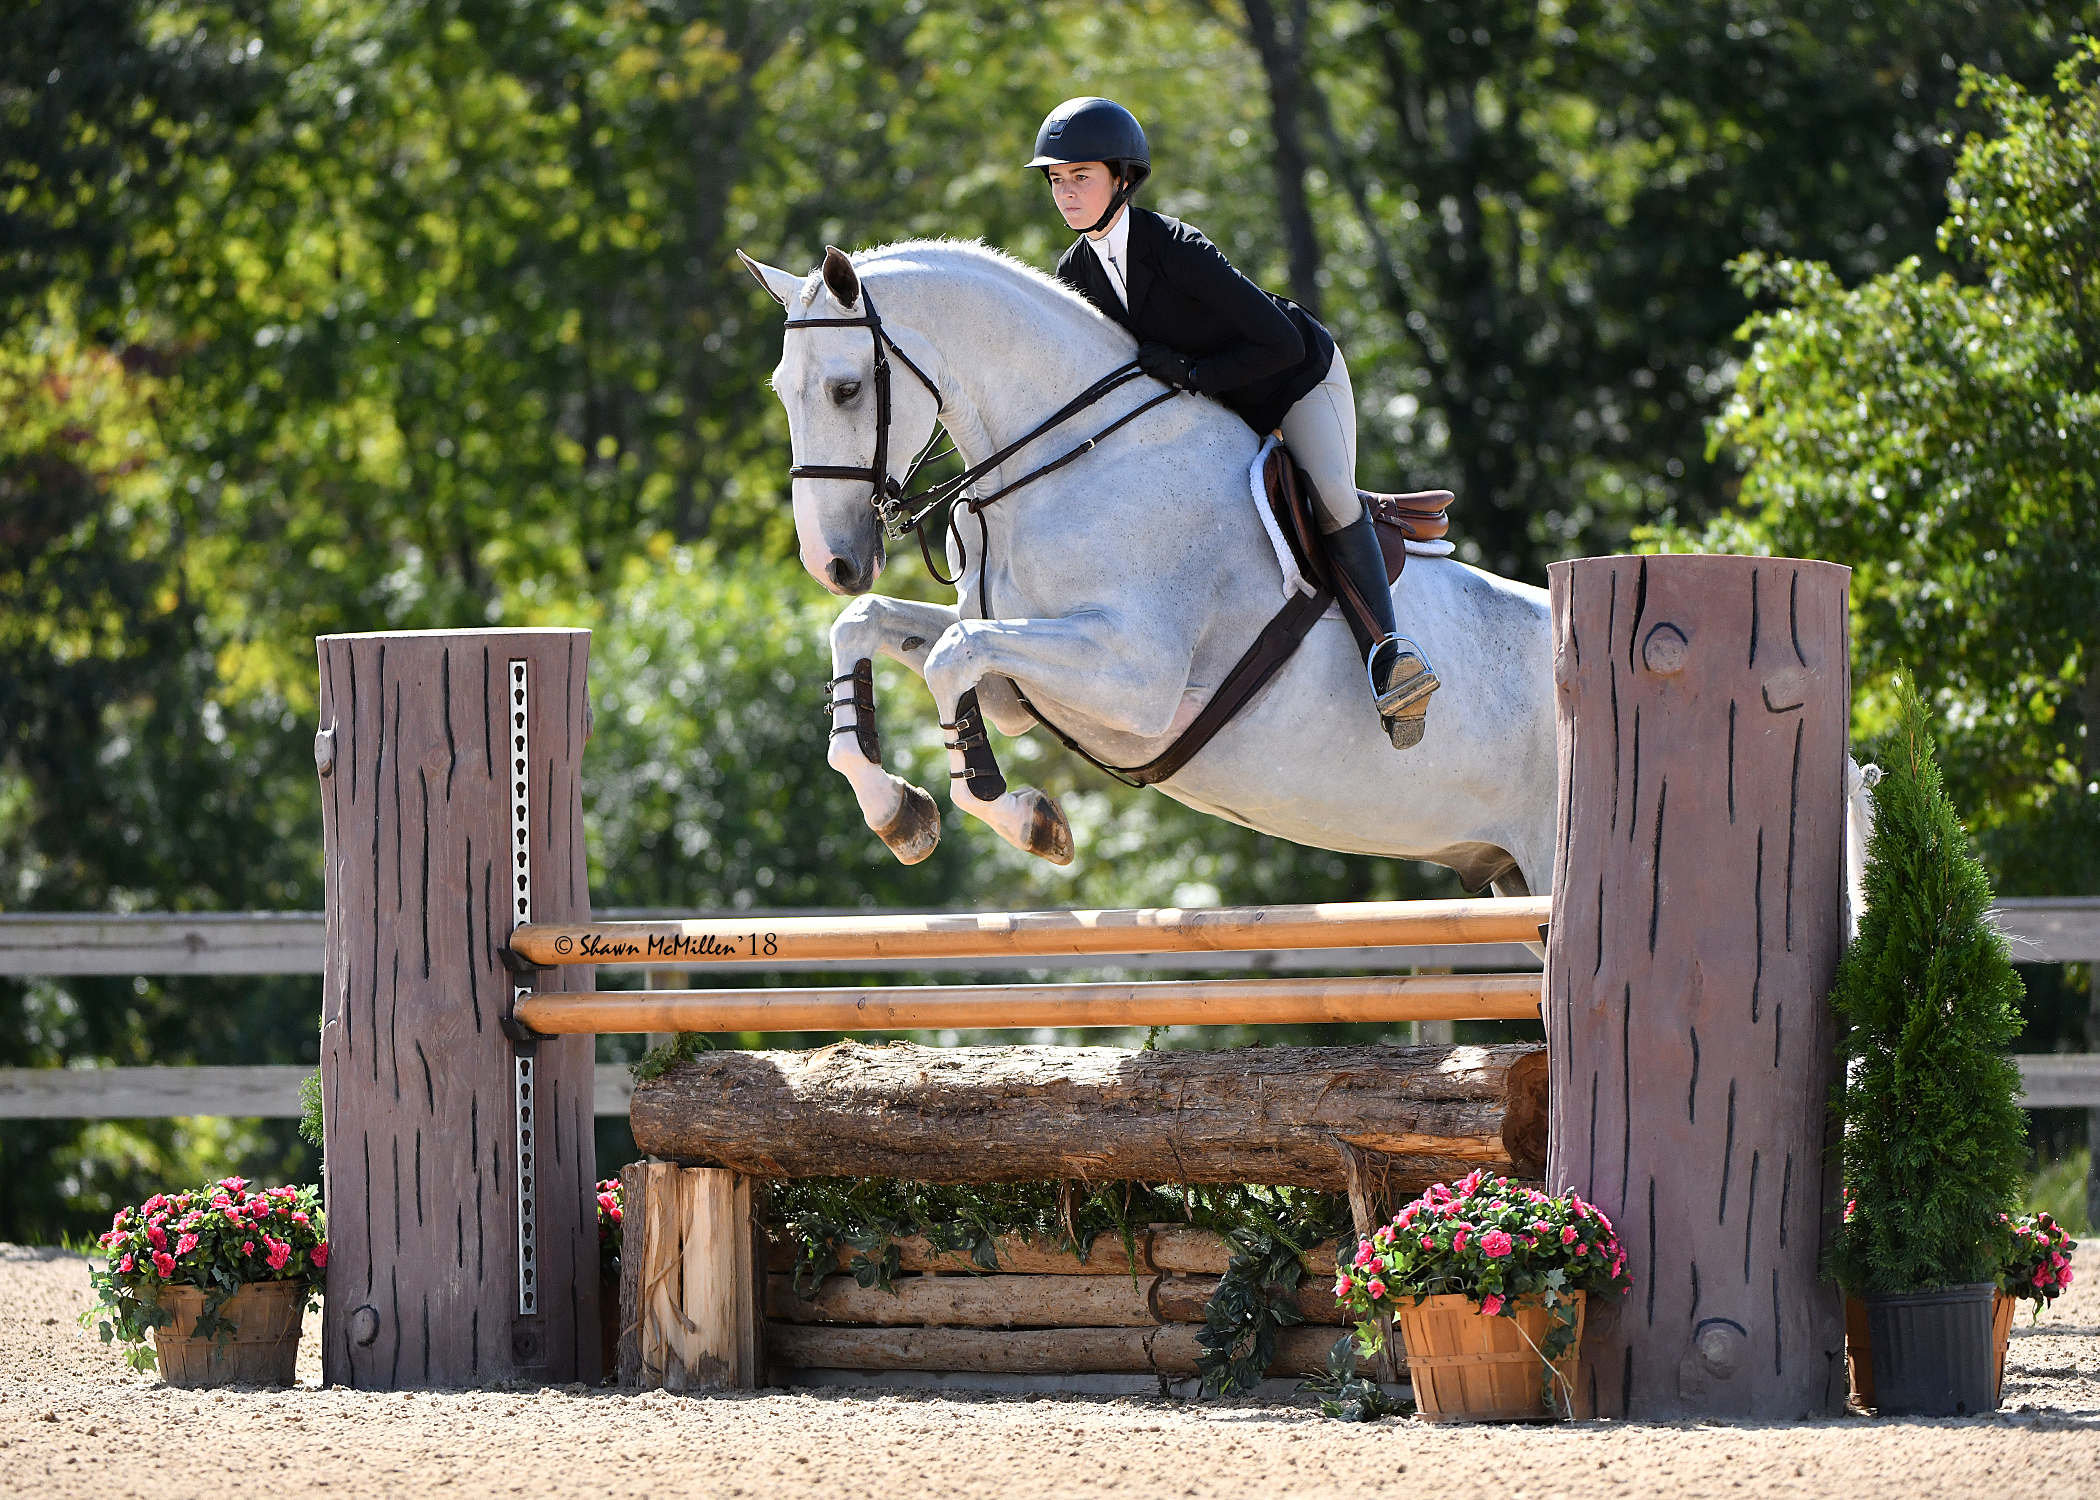 Hannah Hoch and E.V. Comander (a.k.a. Salty) at the 2018 Capital Challenge Horse Show. Photo by Shawn McMillen Photography